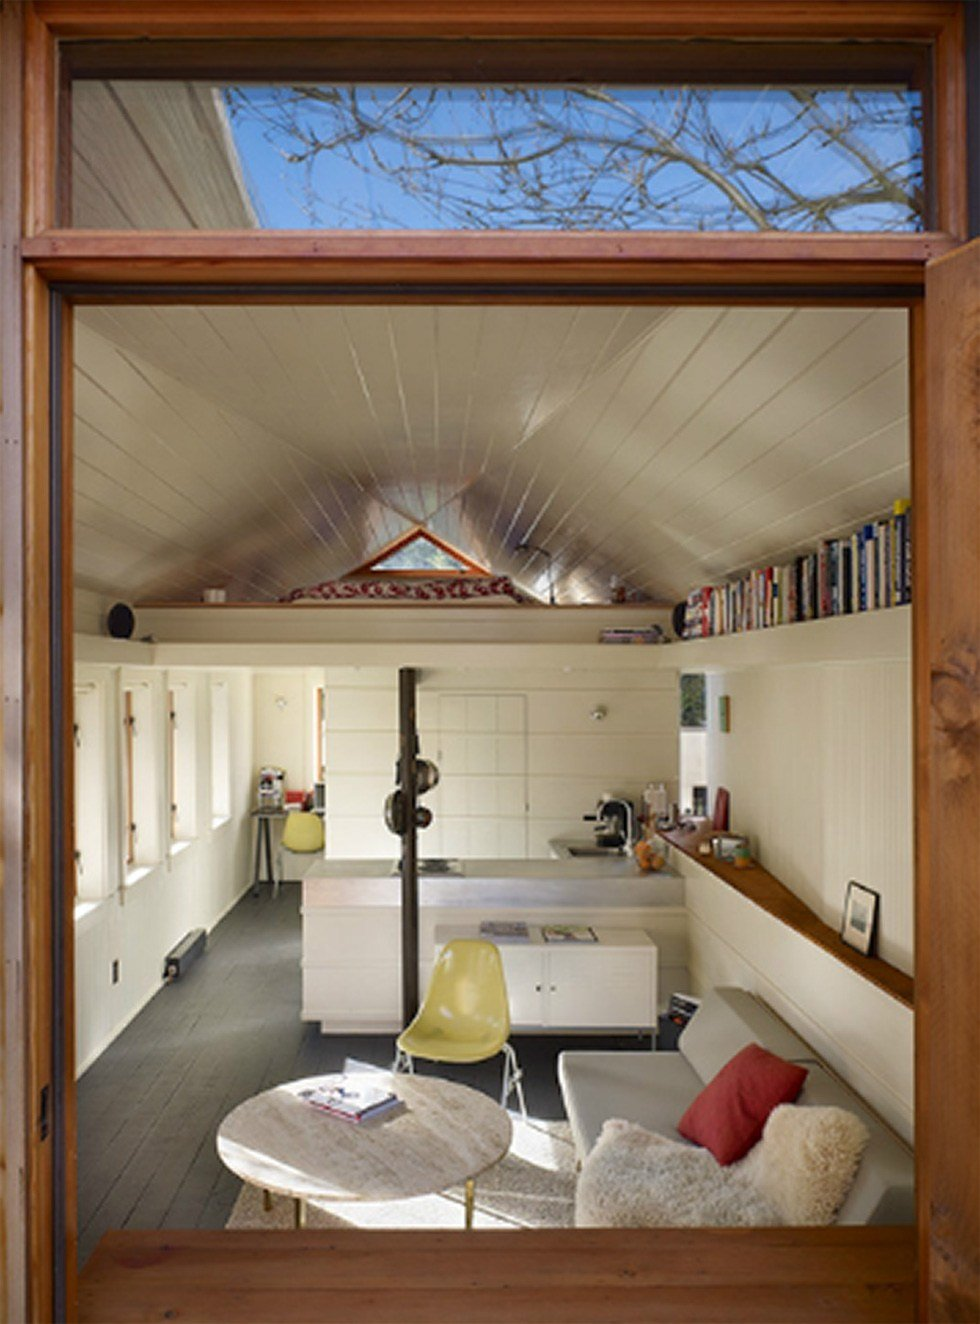 Best Convert Garage To Living Space How To Convert A Garage Into A Room With Pictures